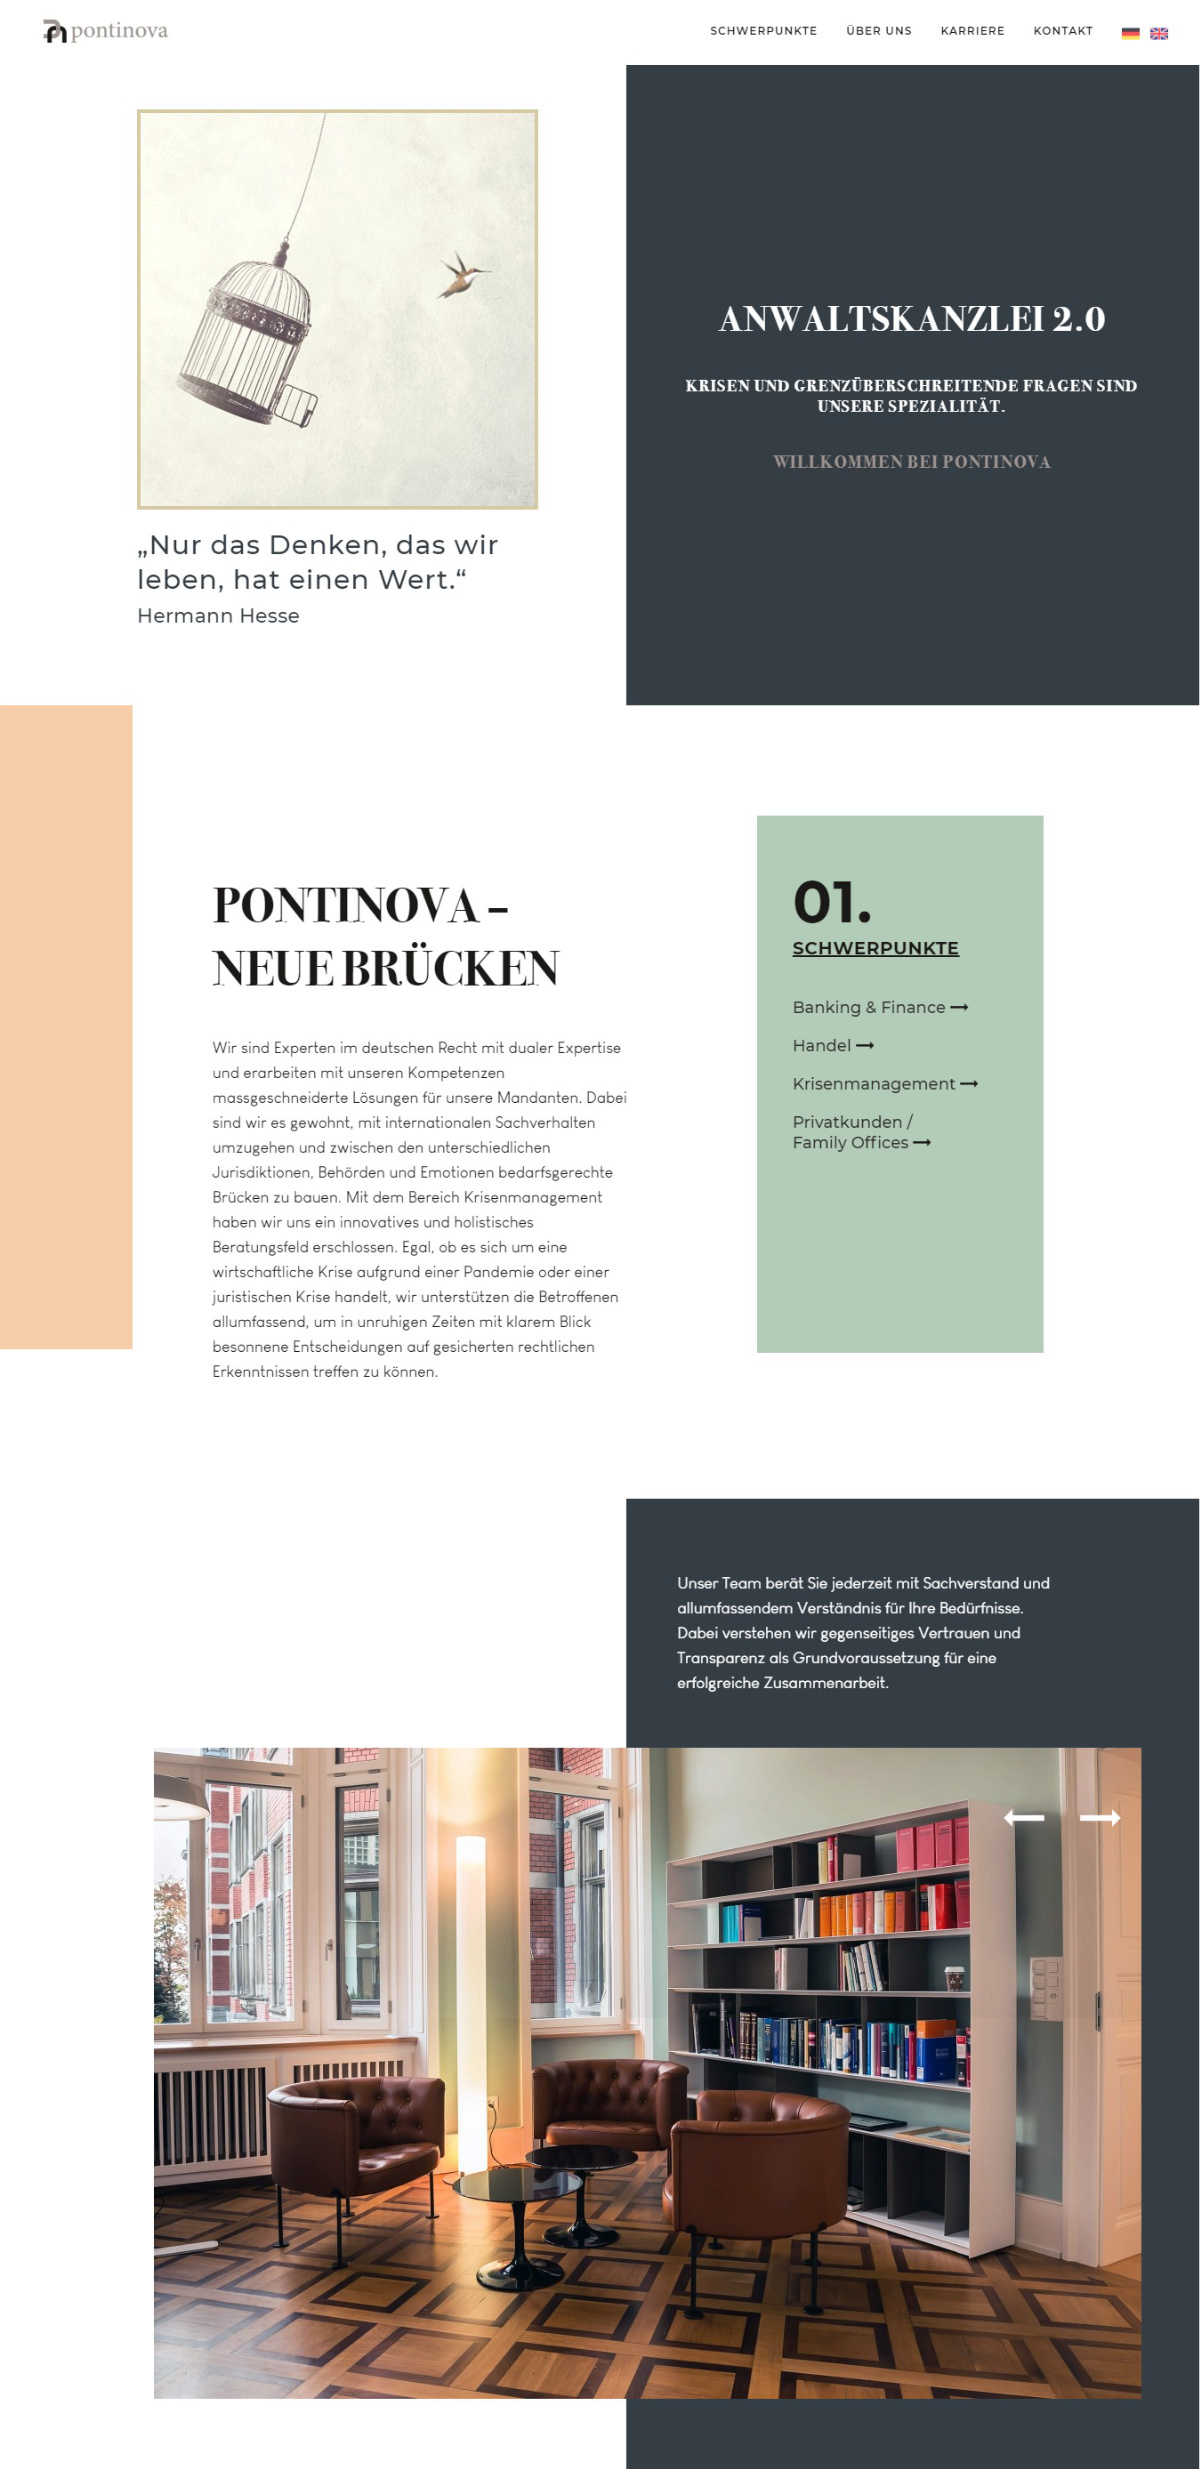 Pontinova Anwalts Boutique Webdesign Inspiration